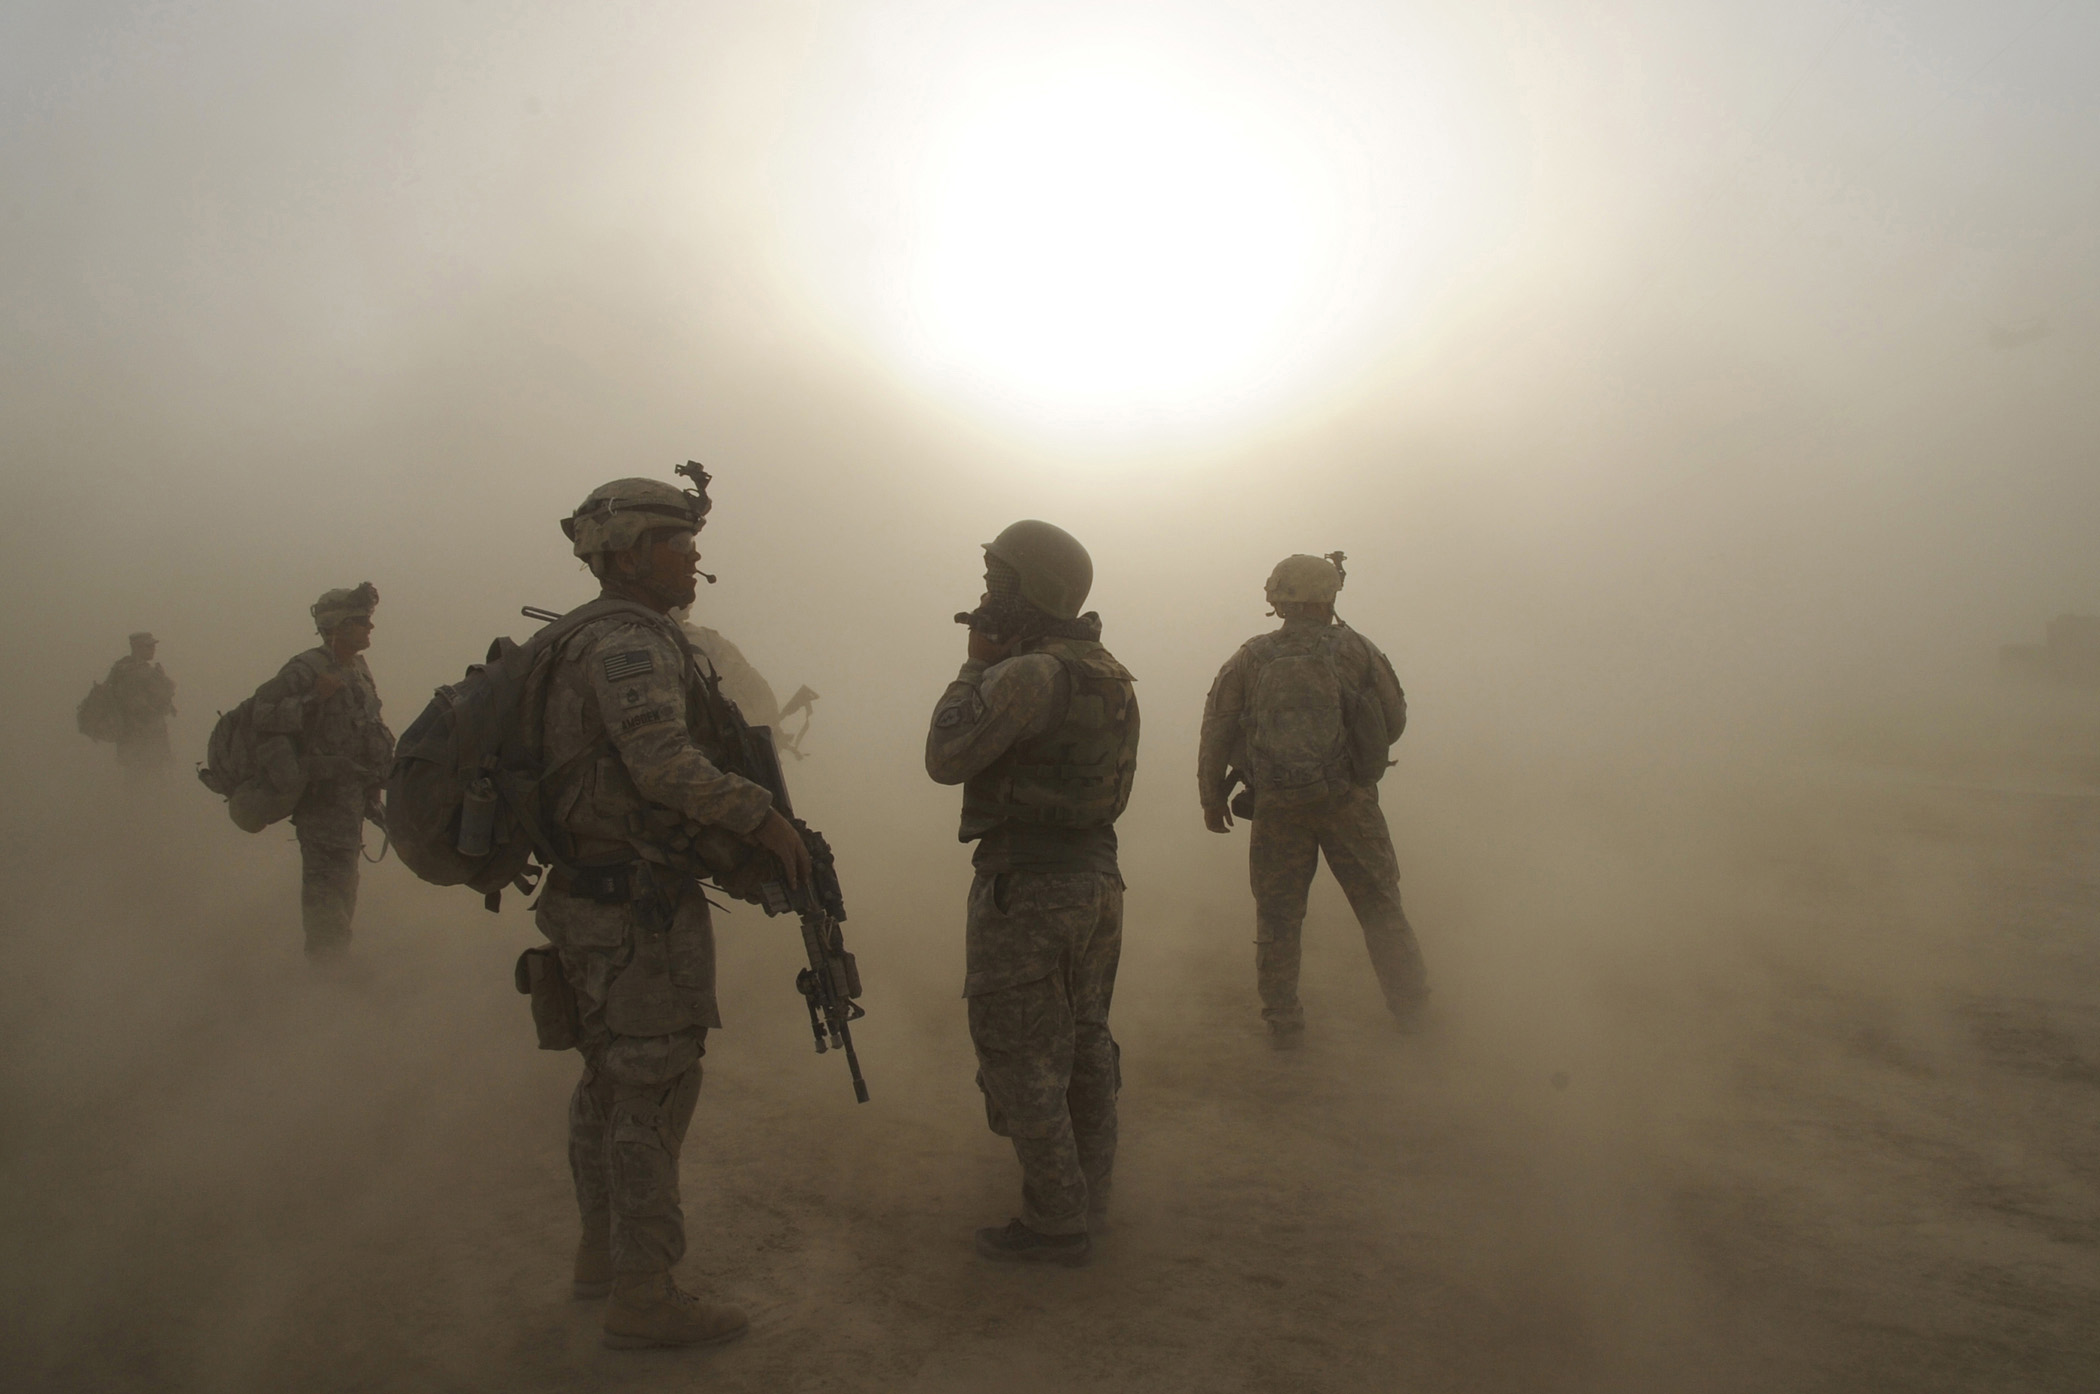 https://upload.wikimedia.org/wikipedia/commons/2/25/Flickr_-_The_U.S._Army_-_Waiting_out_the_dust_storm.jpg